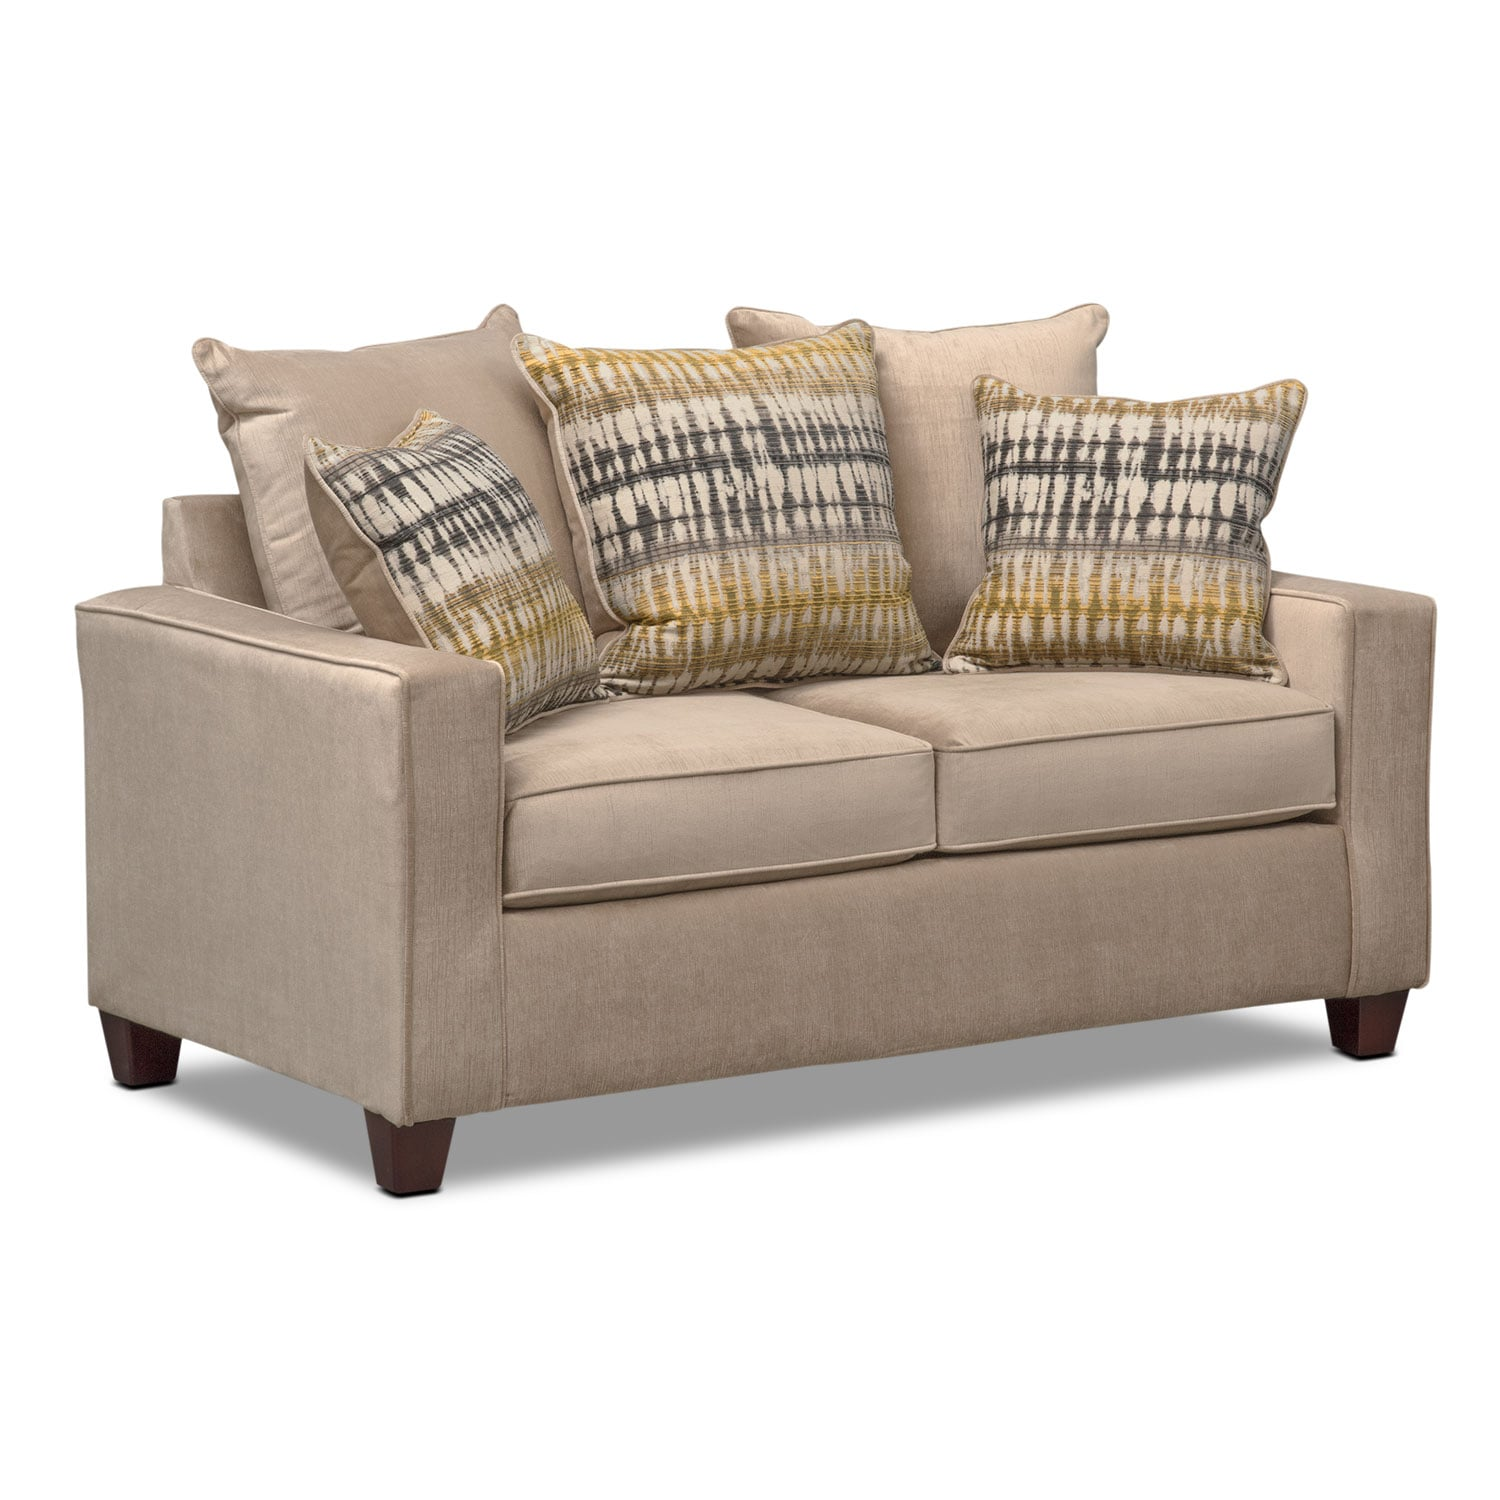 Bryden Sofa and Loveseat Set Beige